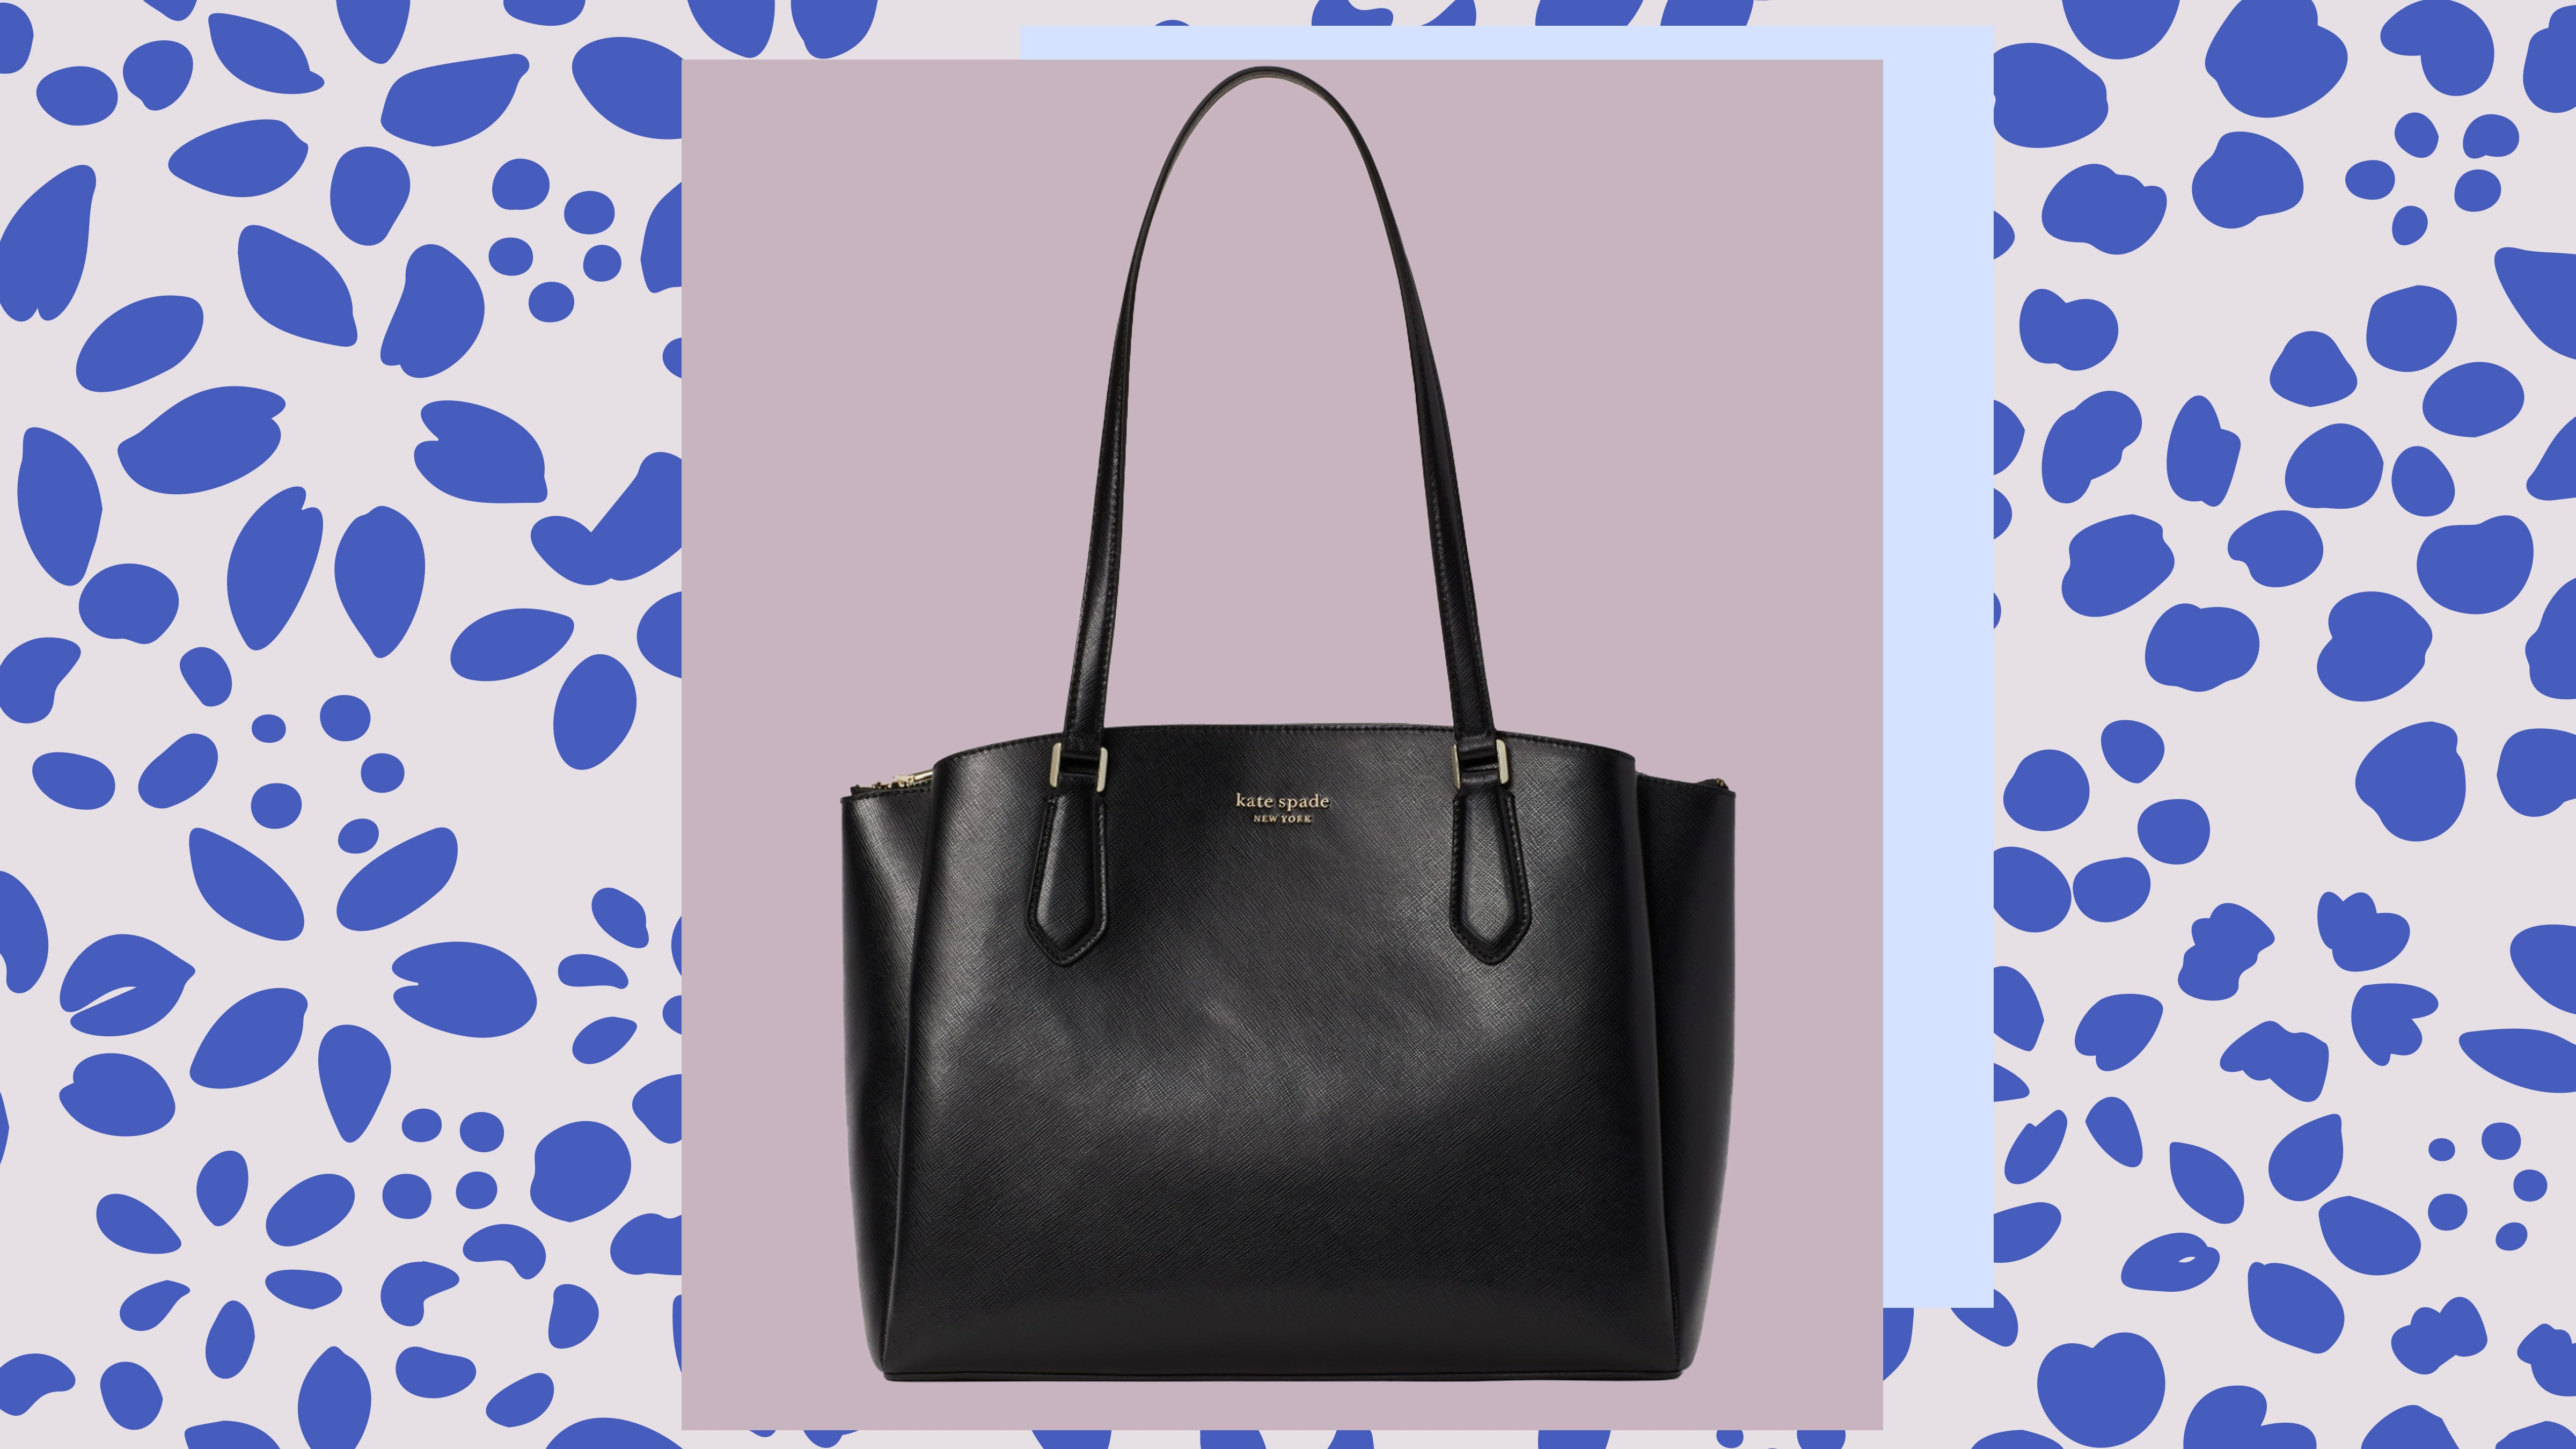 You can get an extra 40% off Kate Spade sale styles right now